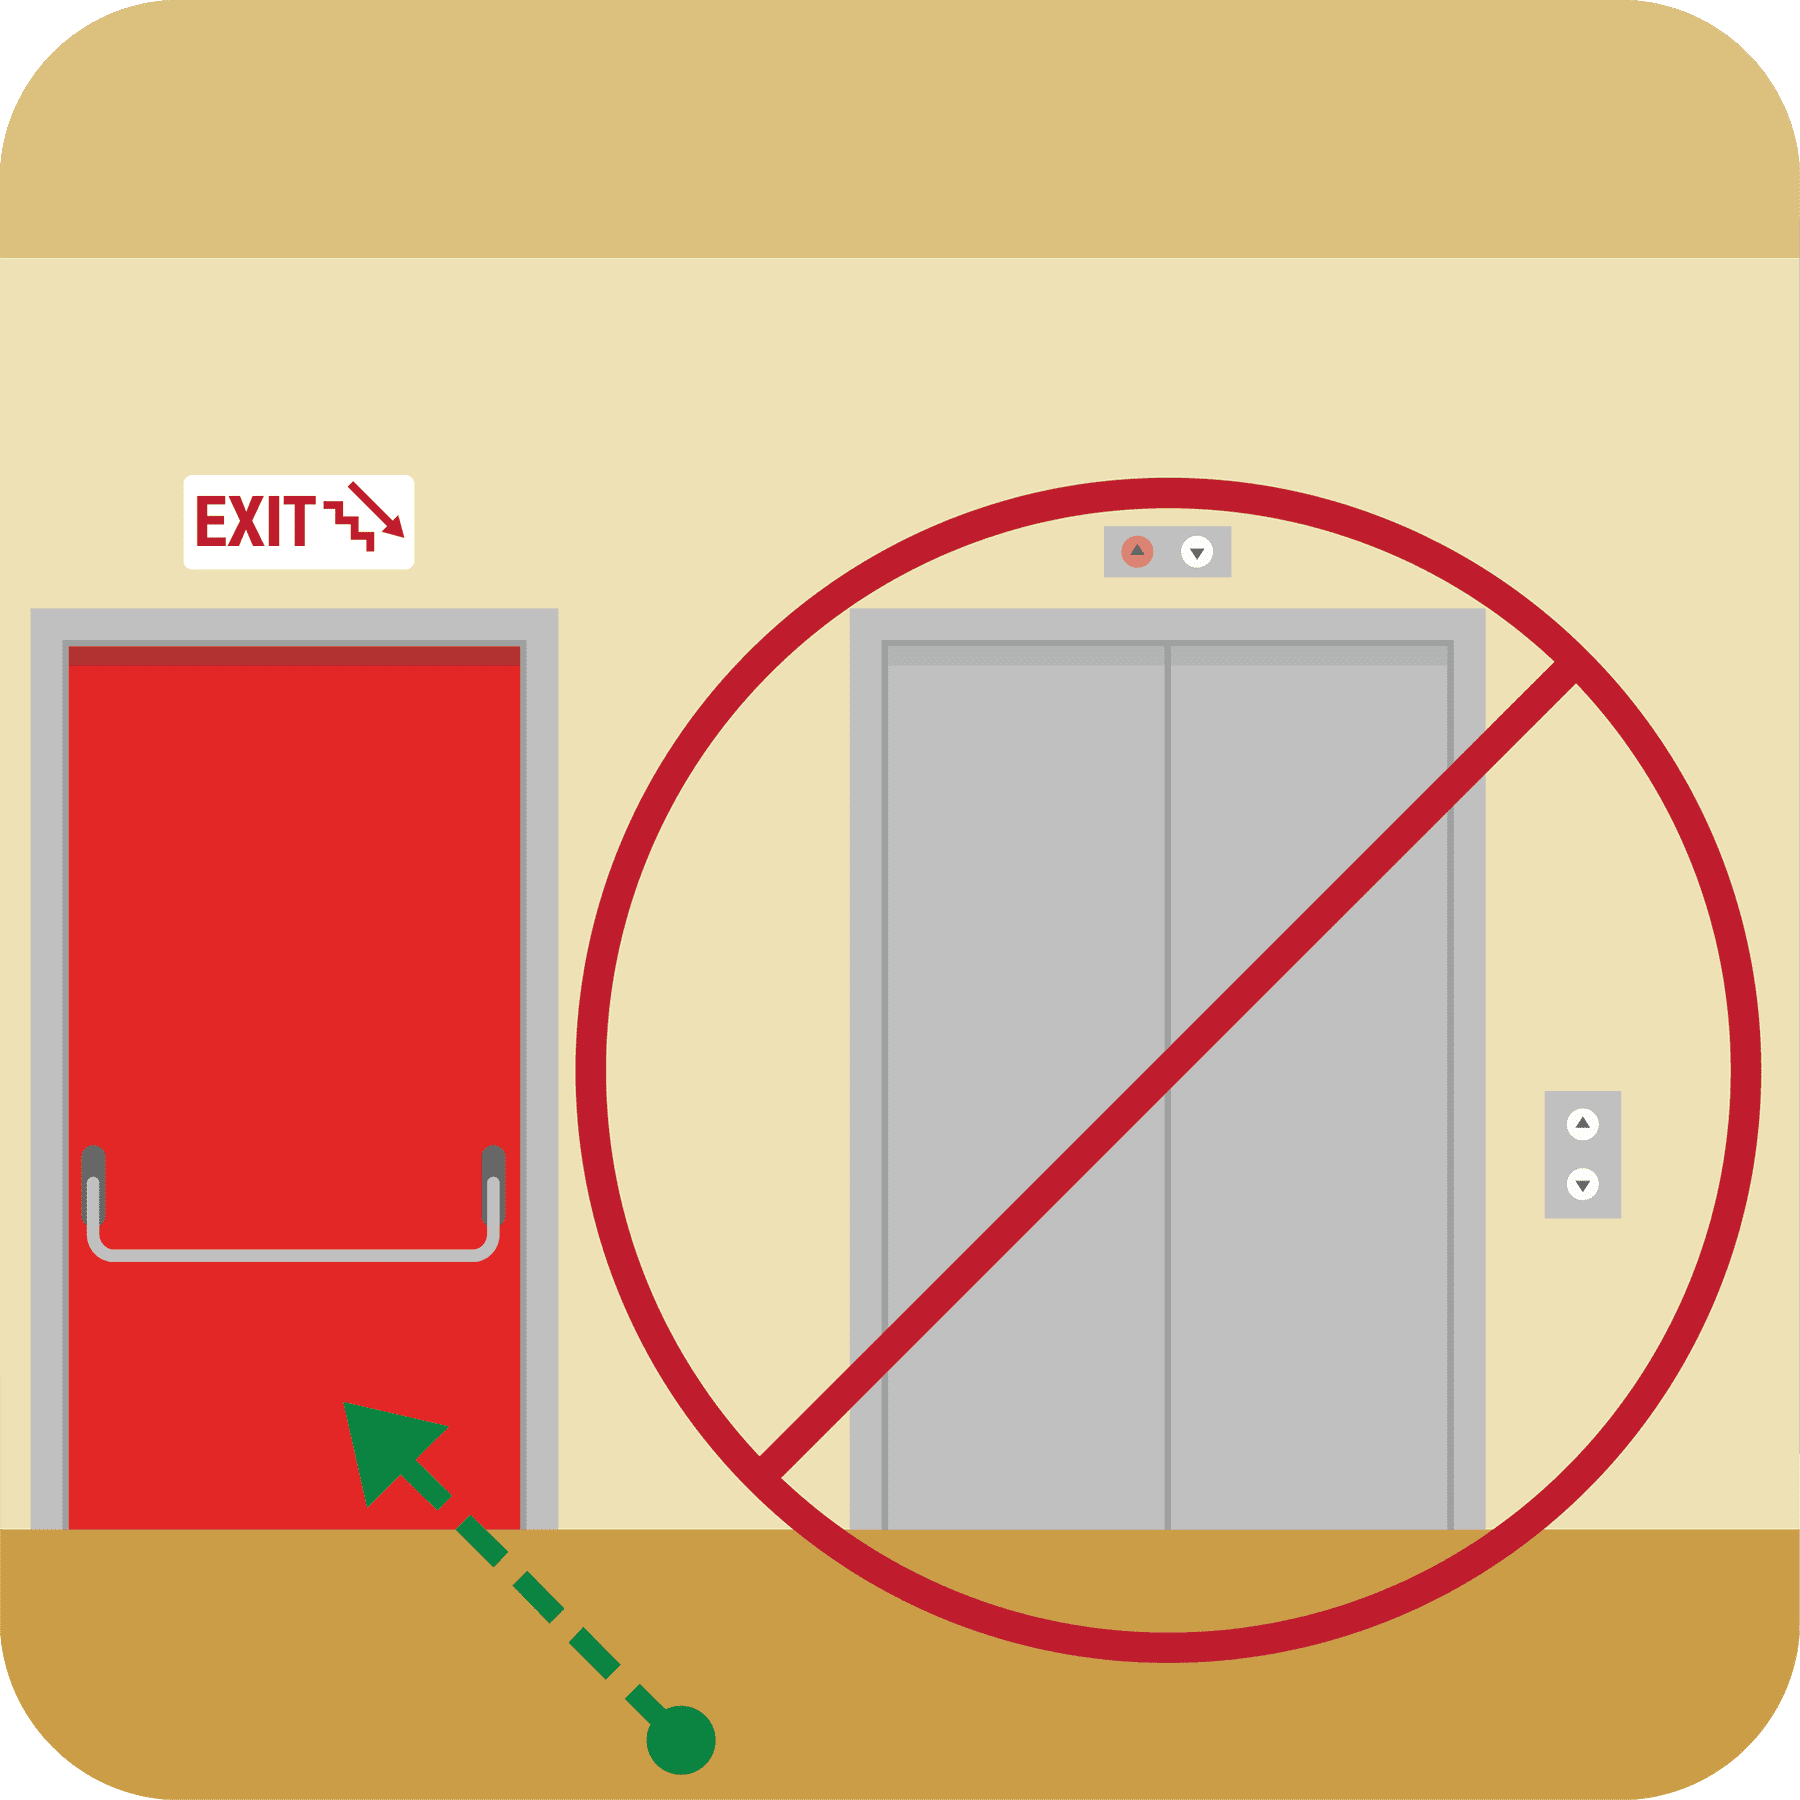 Picture of elevator with red no symbol over it. Green arrow pointing to exit.